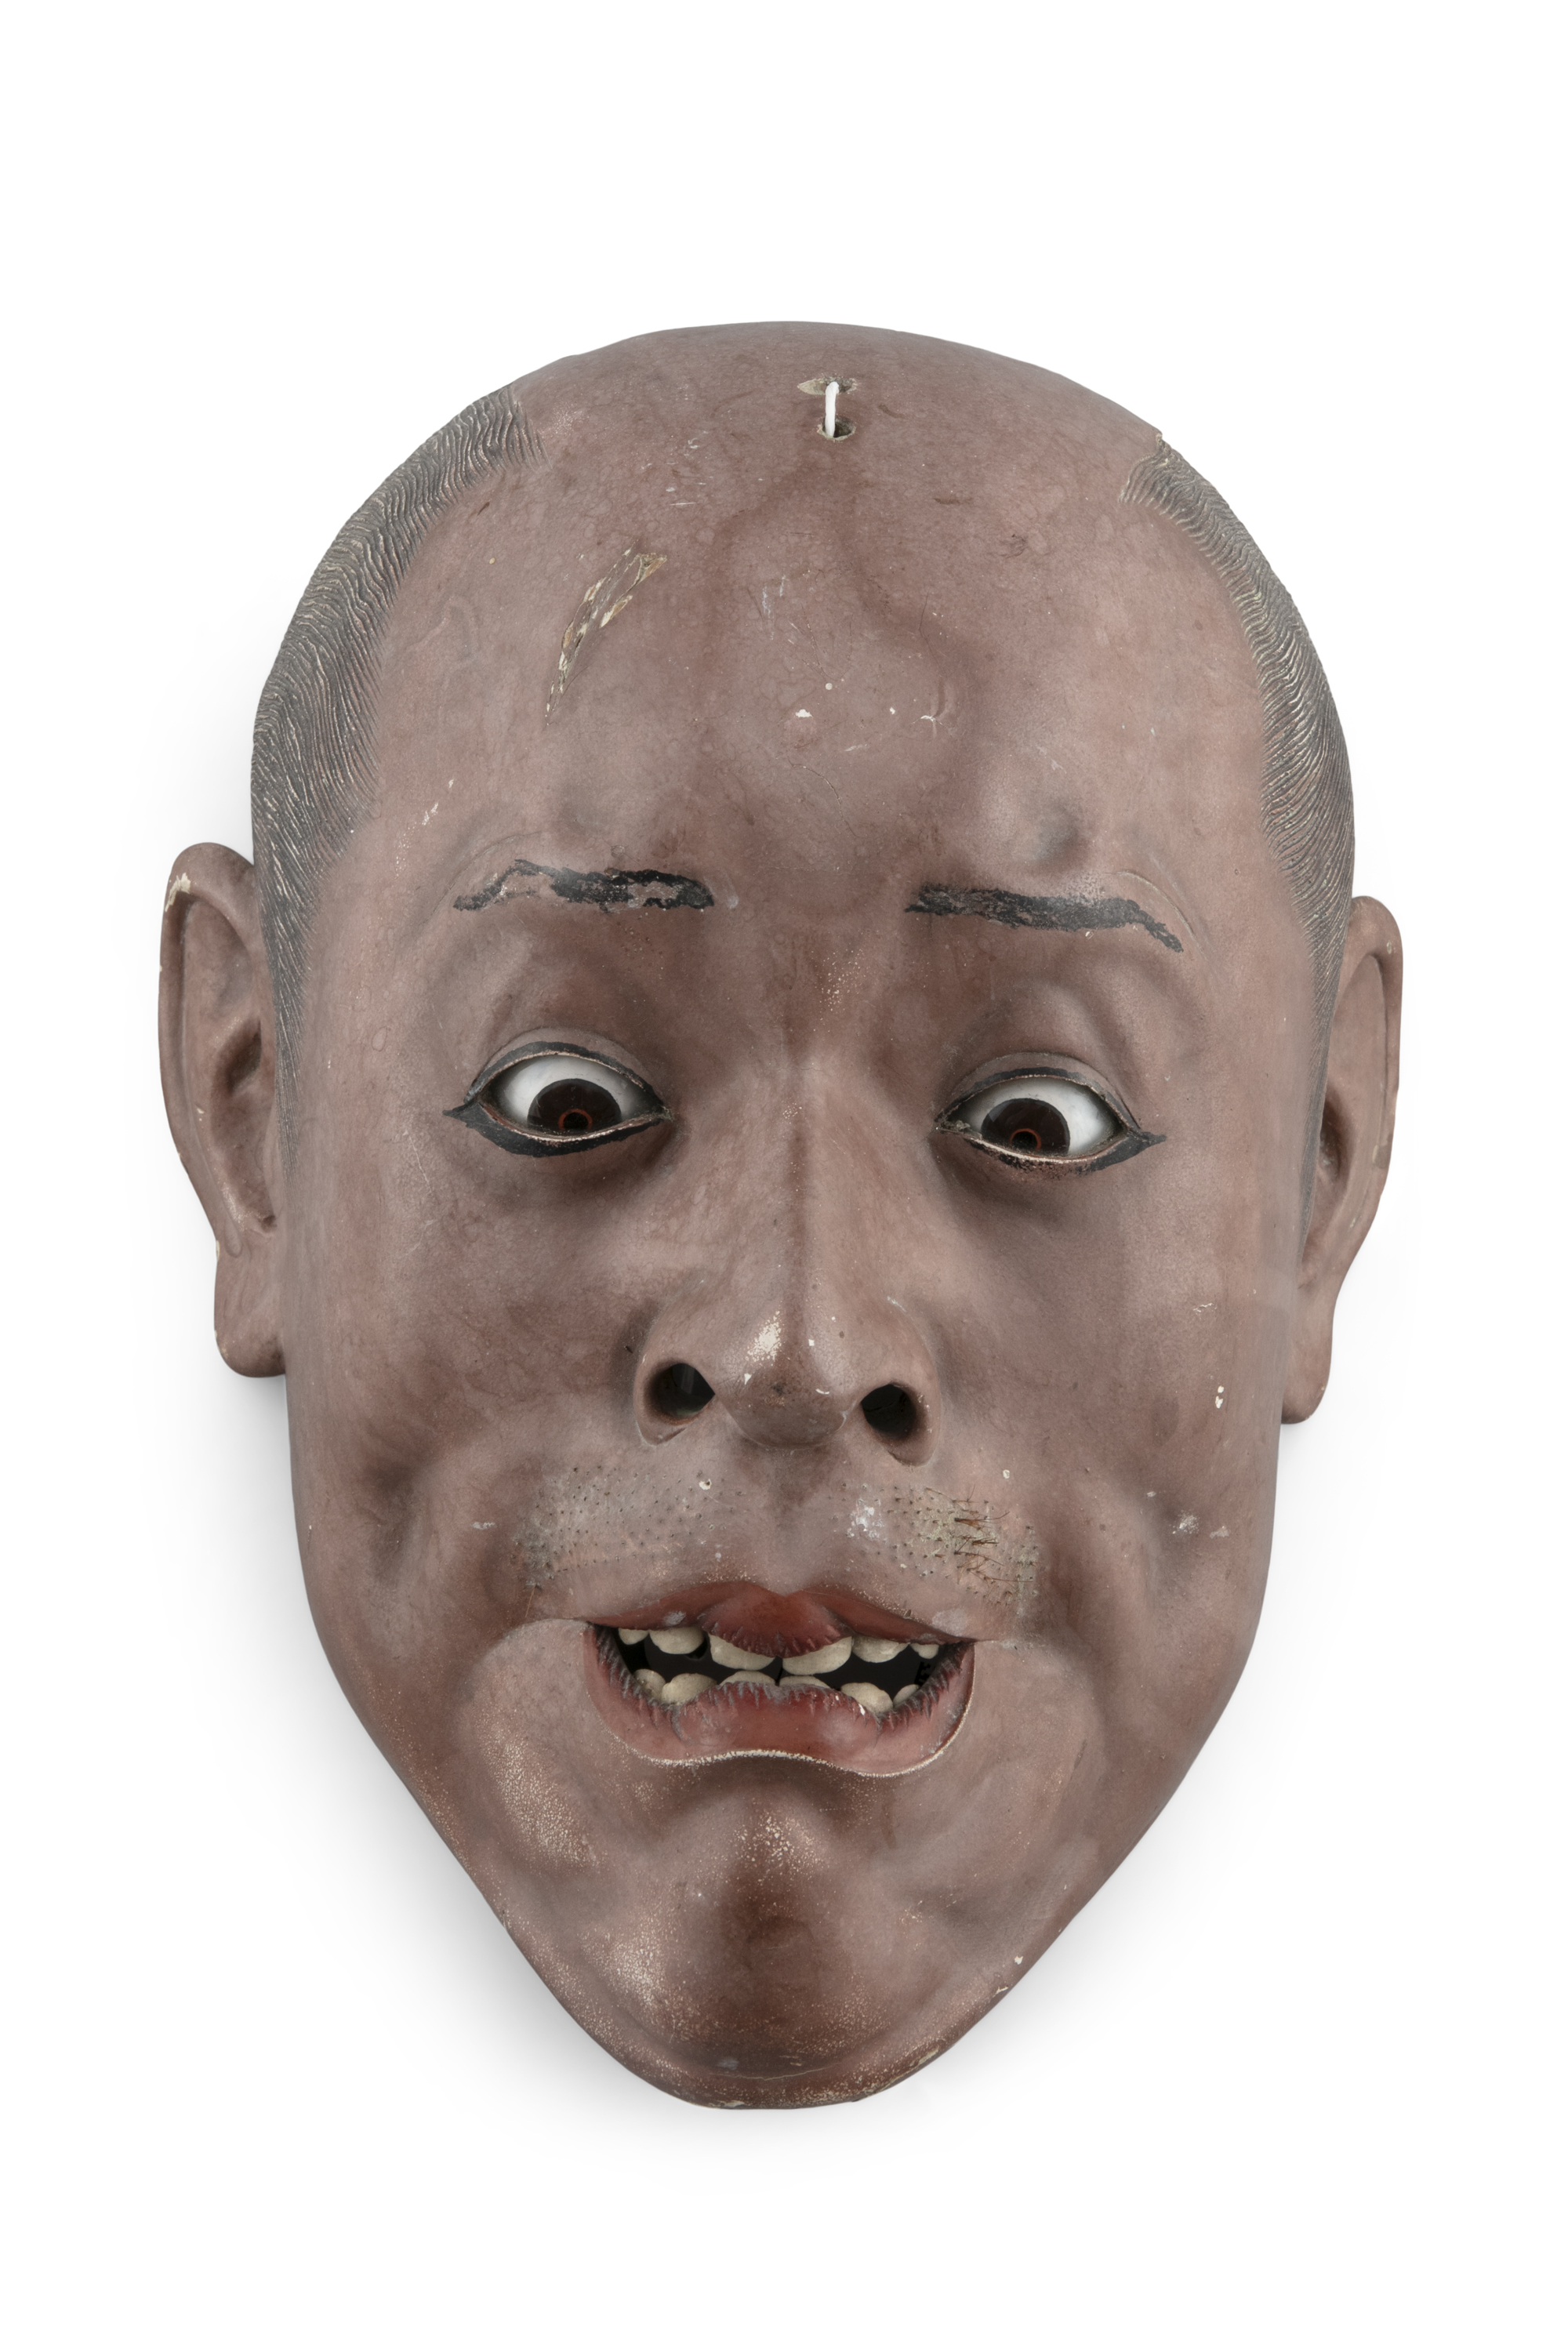 AN IKI NINGYO MASK OF A GRIMACING MAN Japan, 19th century Lacquered wooden mask with lively glass